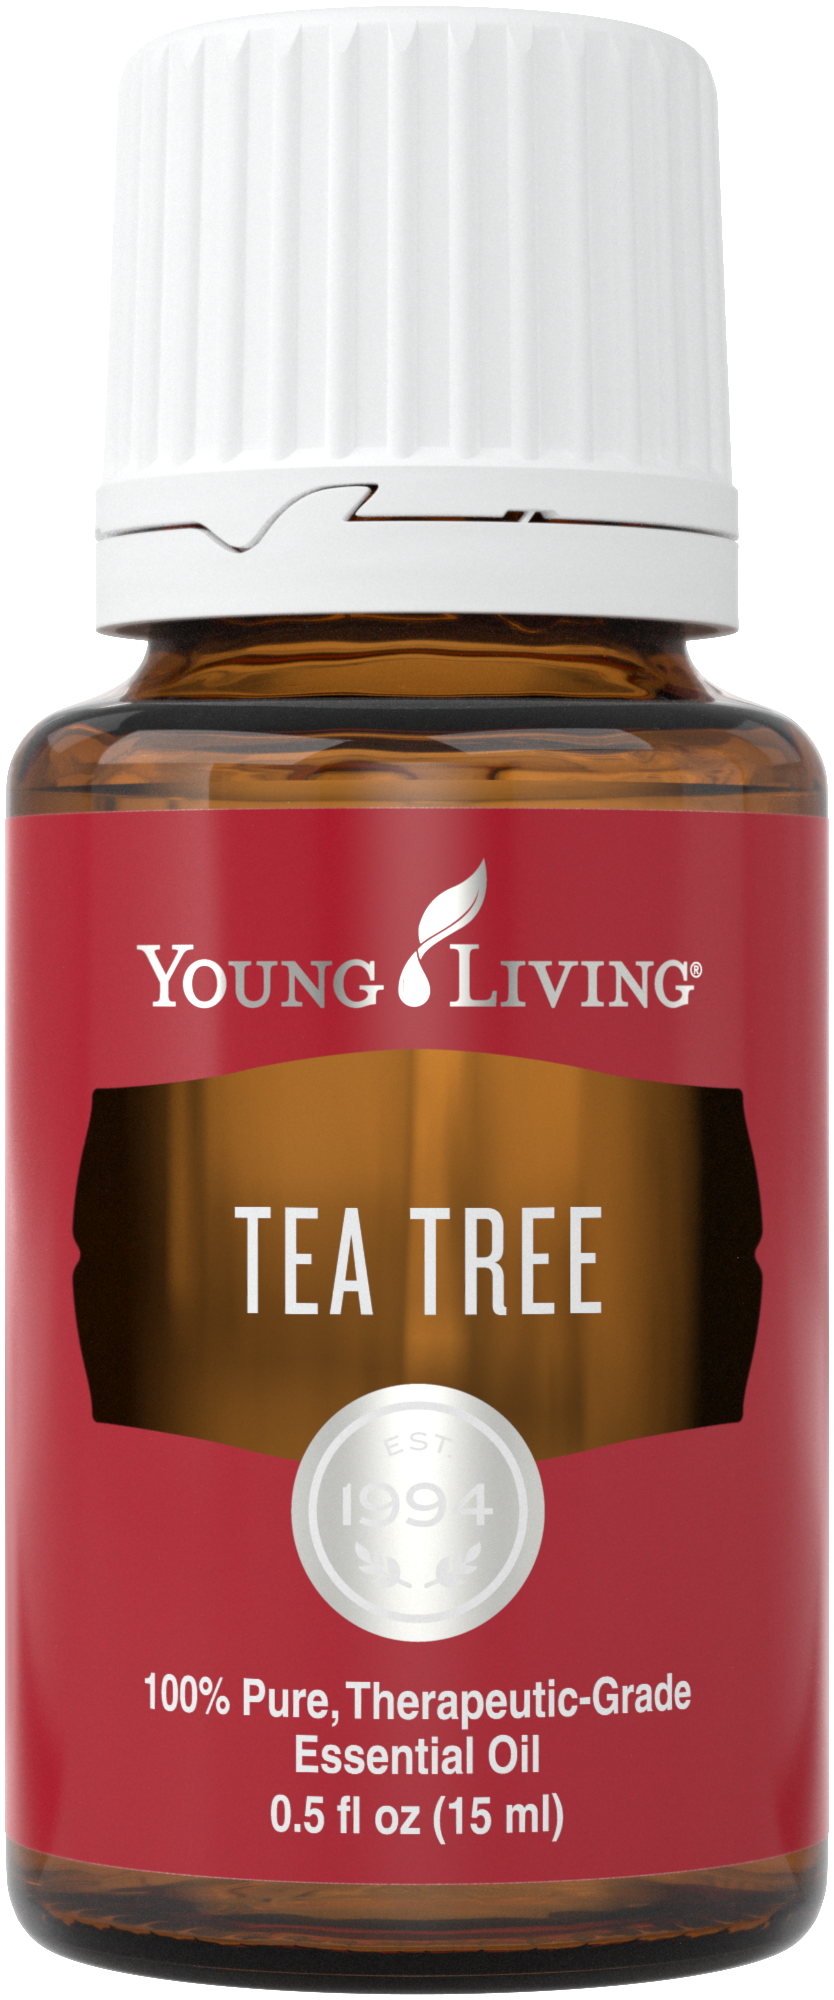 Tea Tree Essential Oil by Young Living